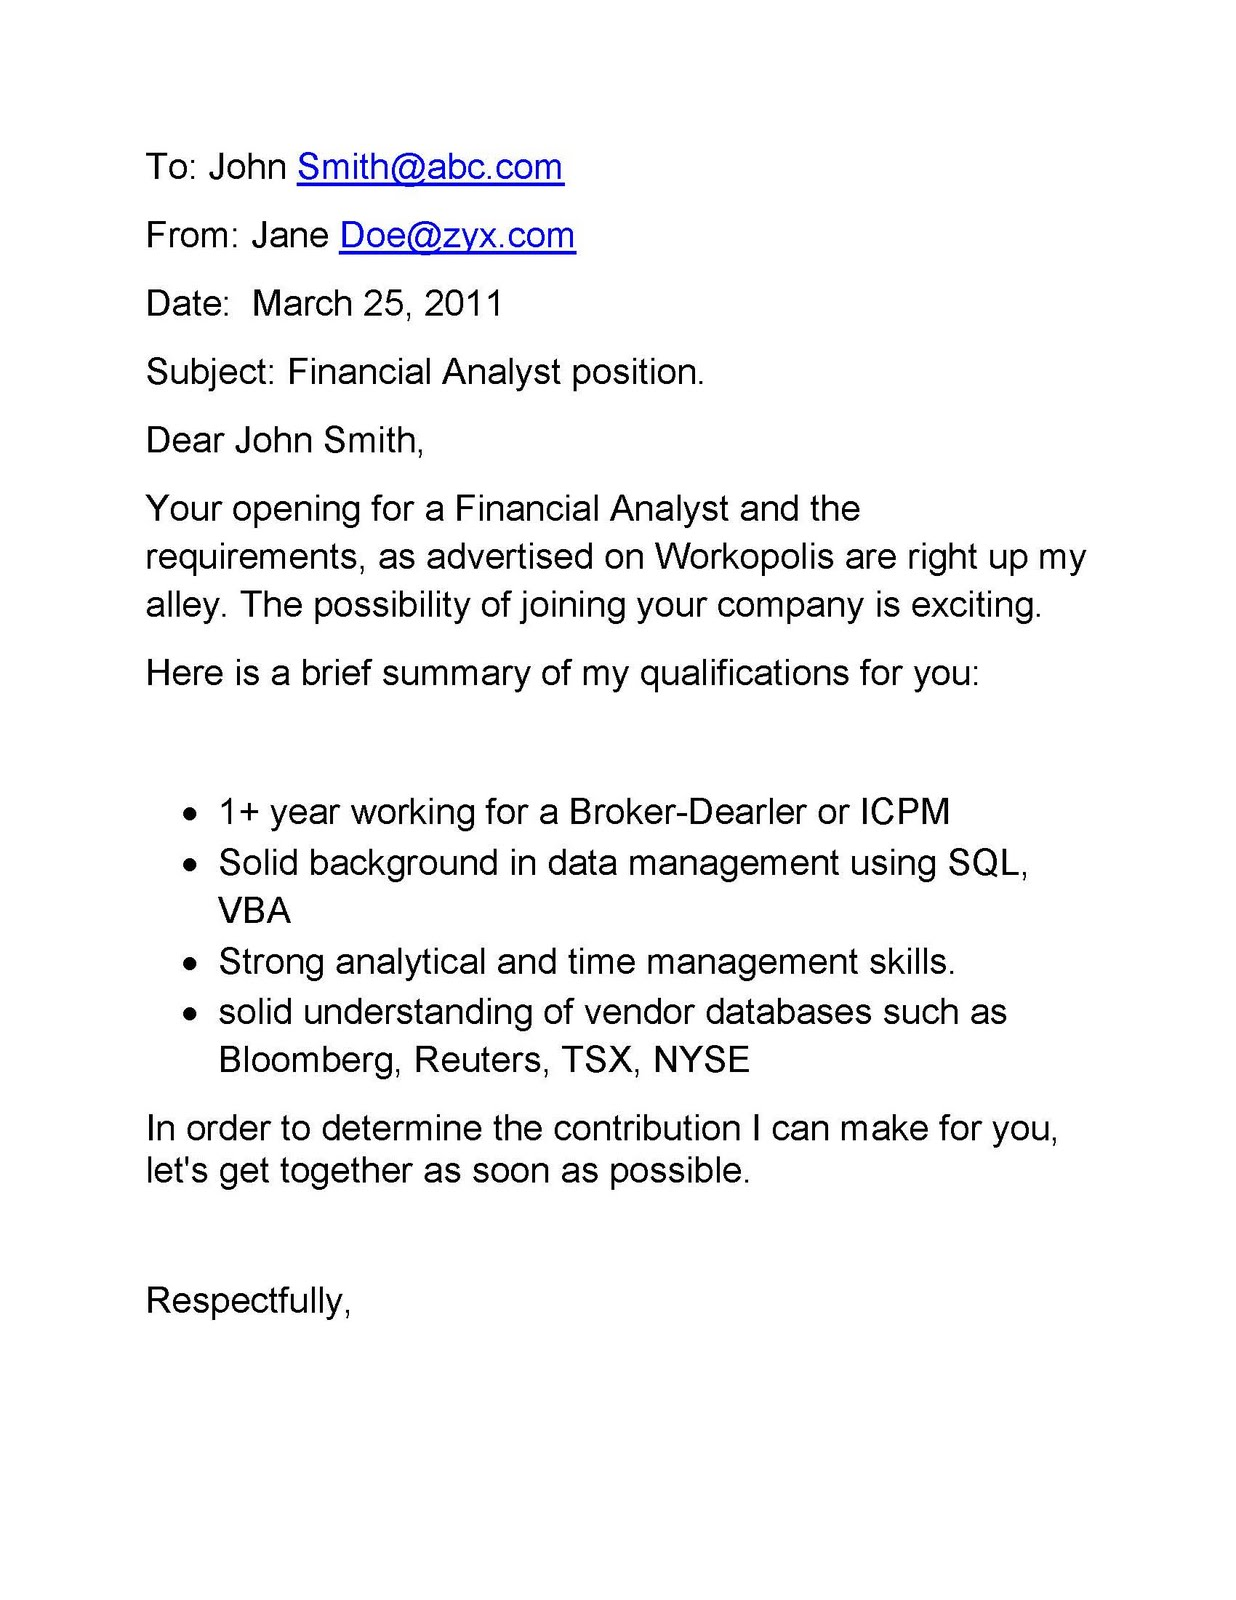 This email cover letter was generated with the Oneclick cover letter ...